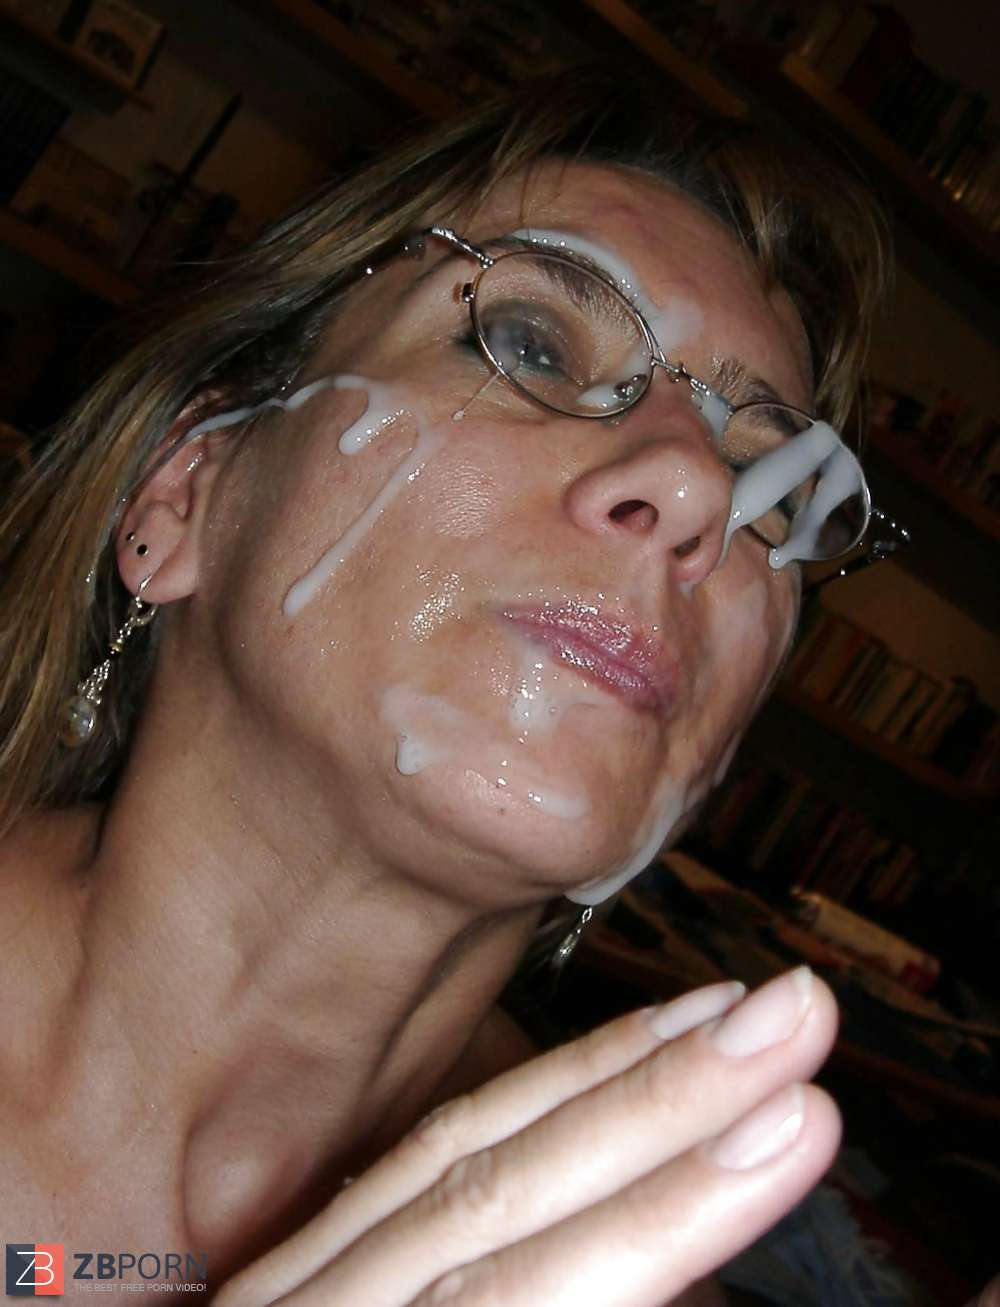 Remarkable, the facials xxx milf cum xxx and have not